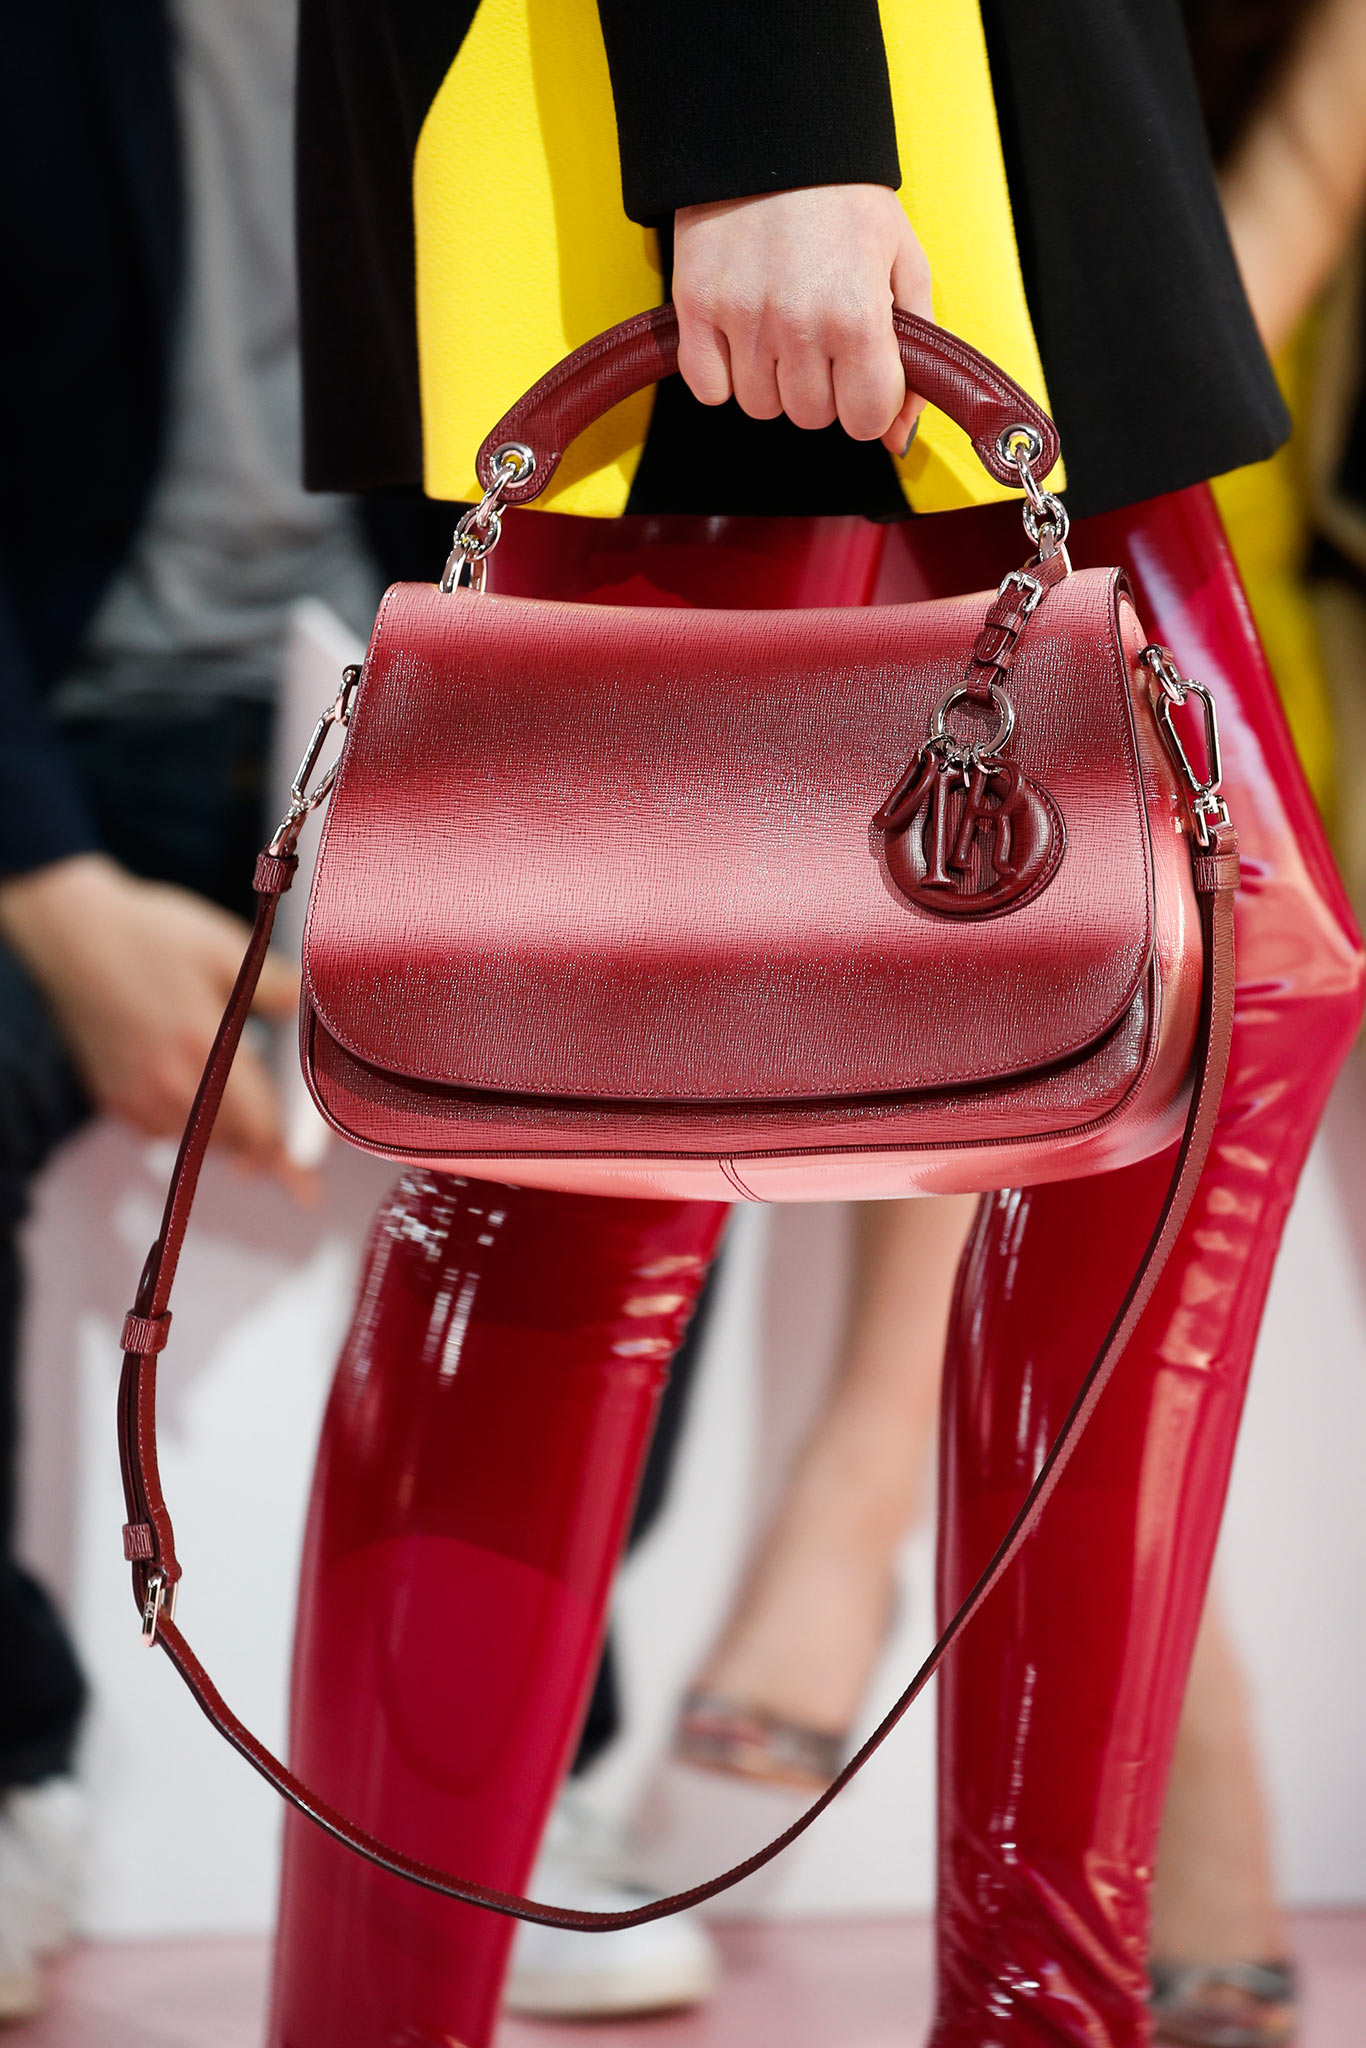 Dior Fall Winter 2015 Runway Bag Collection Featuring